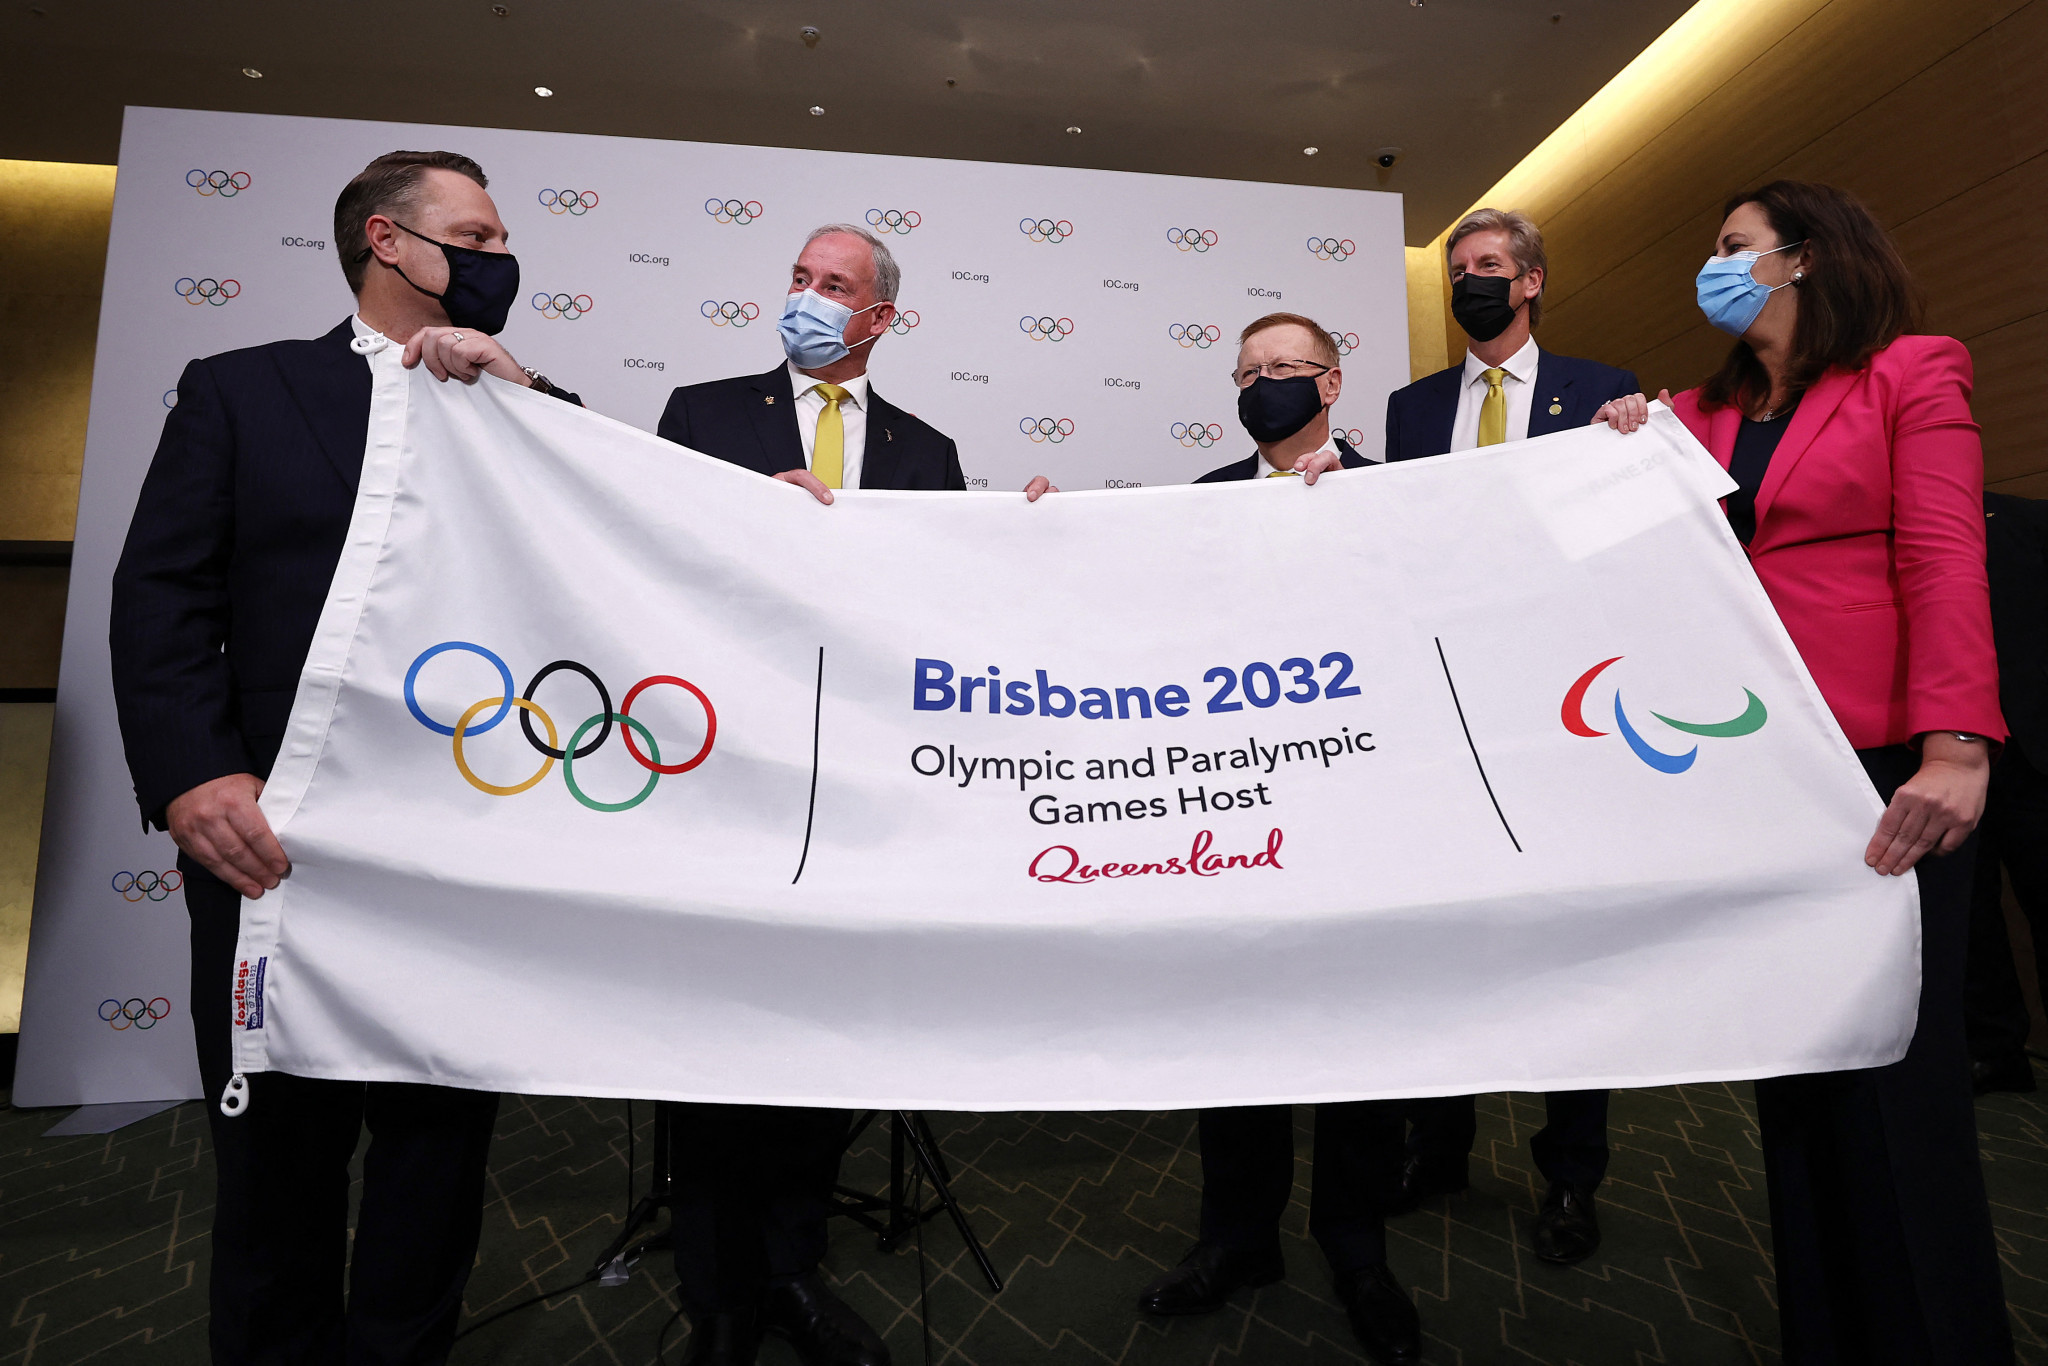 Brisbane was confirmed as host of the 2032 Olympic and Paralympic Games at the IOC Session in Tokyo yesterday ©Getty Images